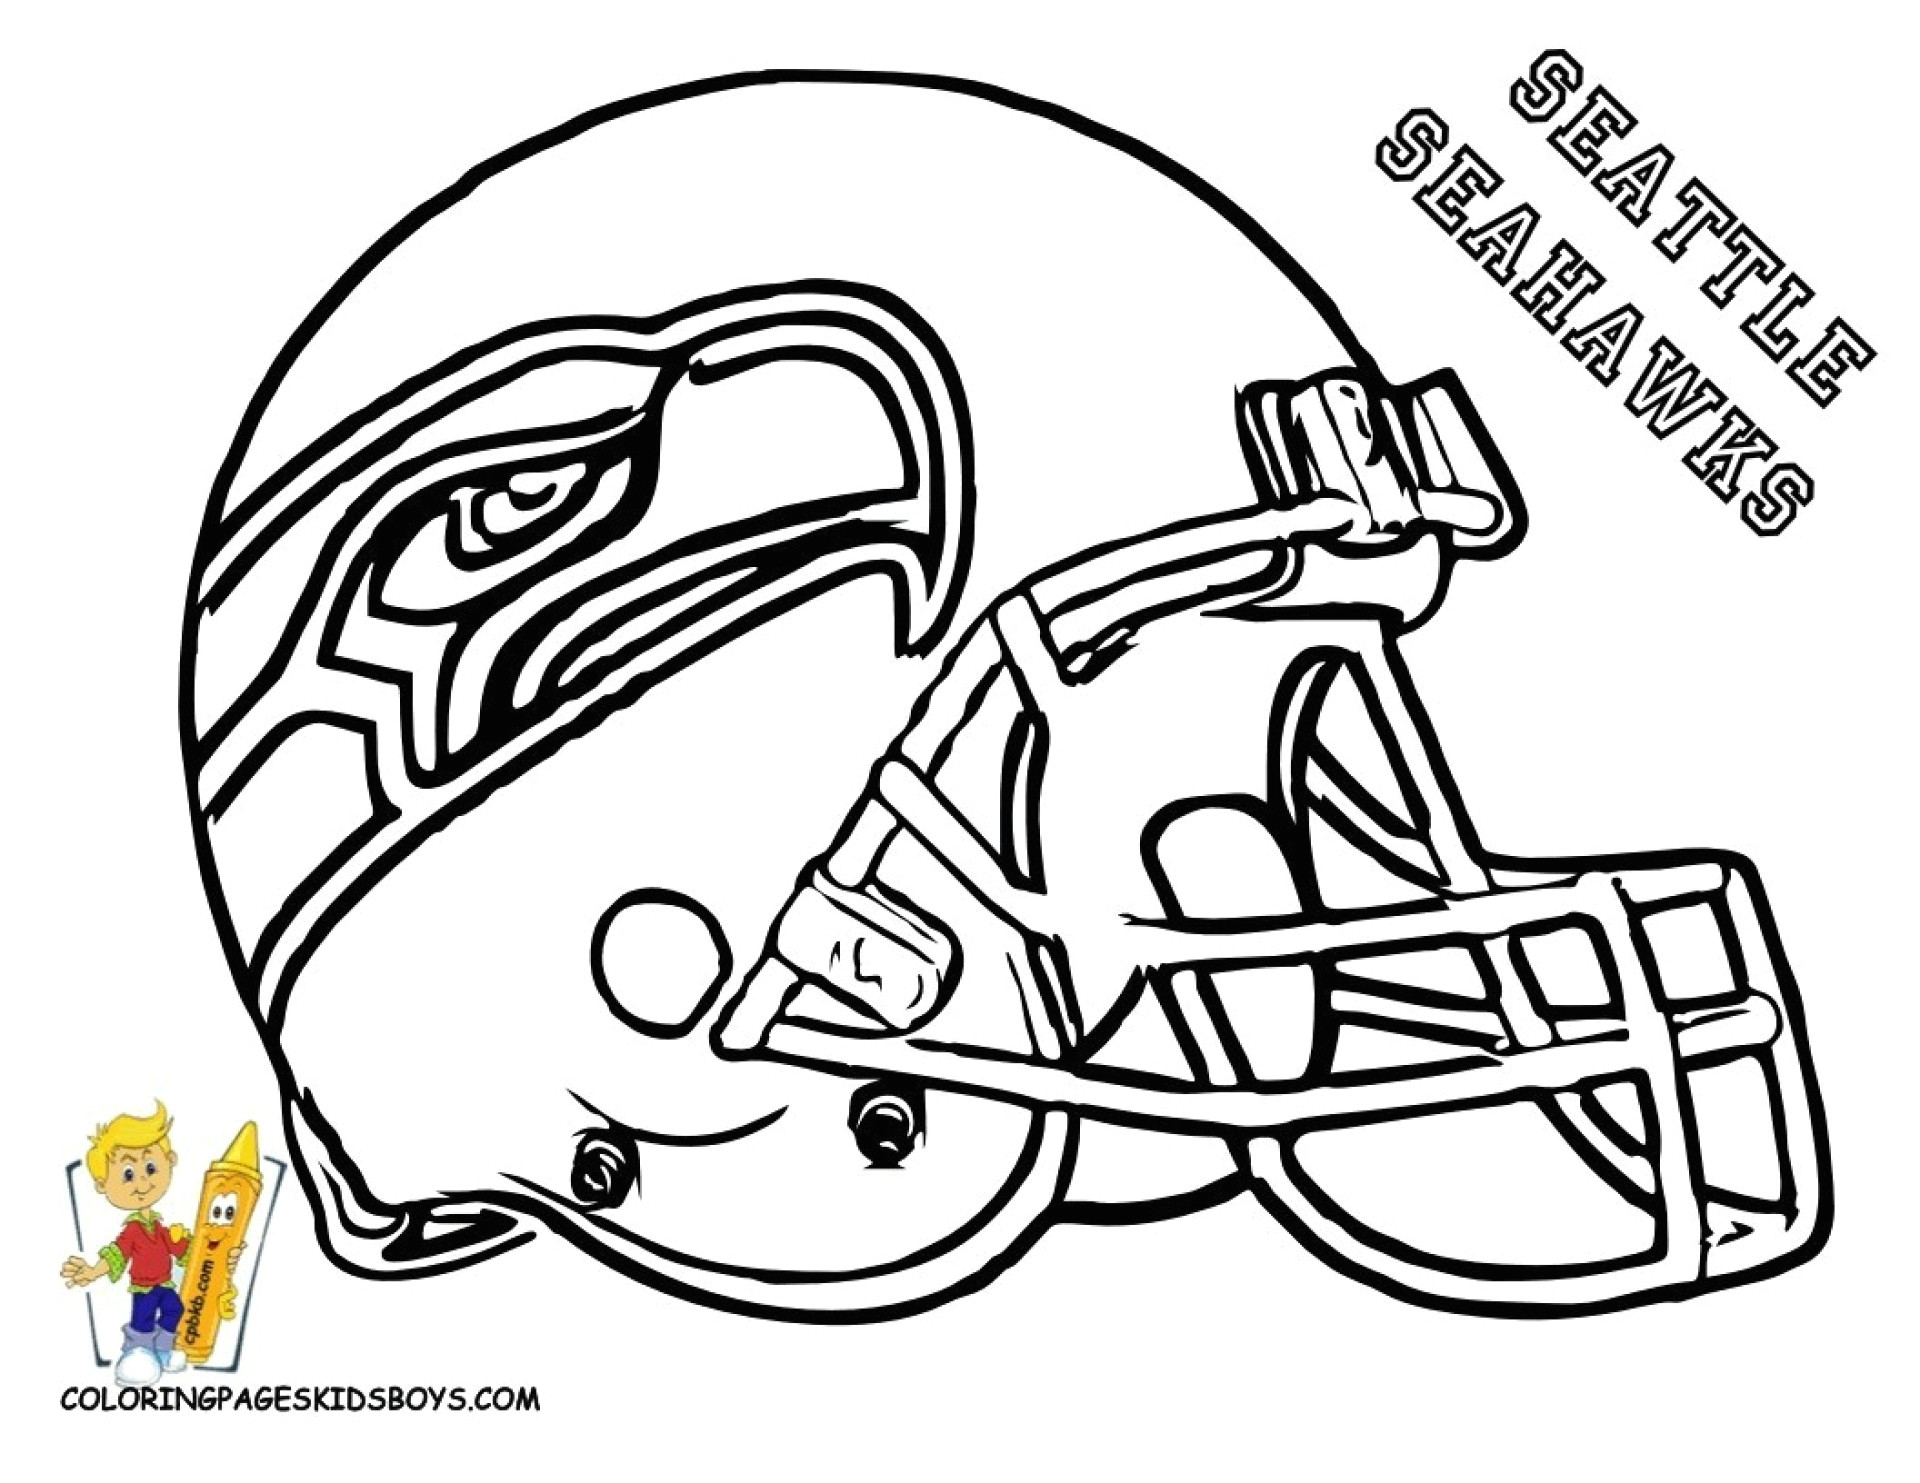 004 nfl logos coloring pages awesome charmant college football malvorlagen helme fotos entry level inspirational 49ers